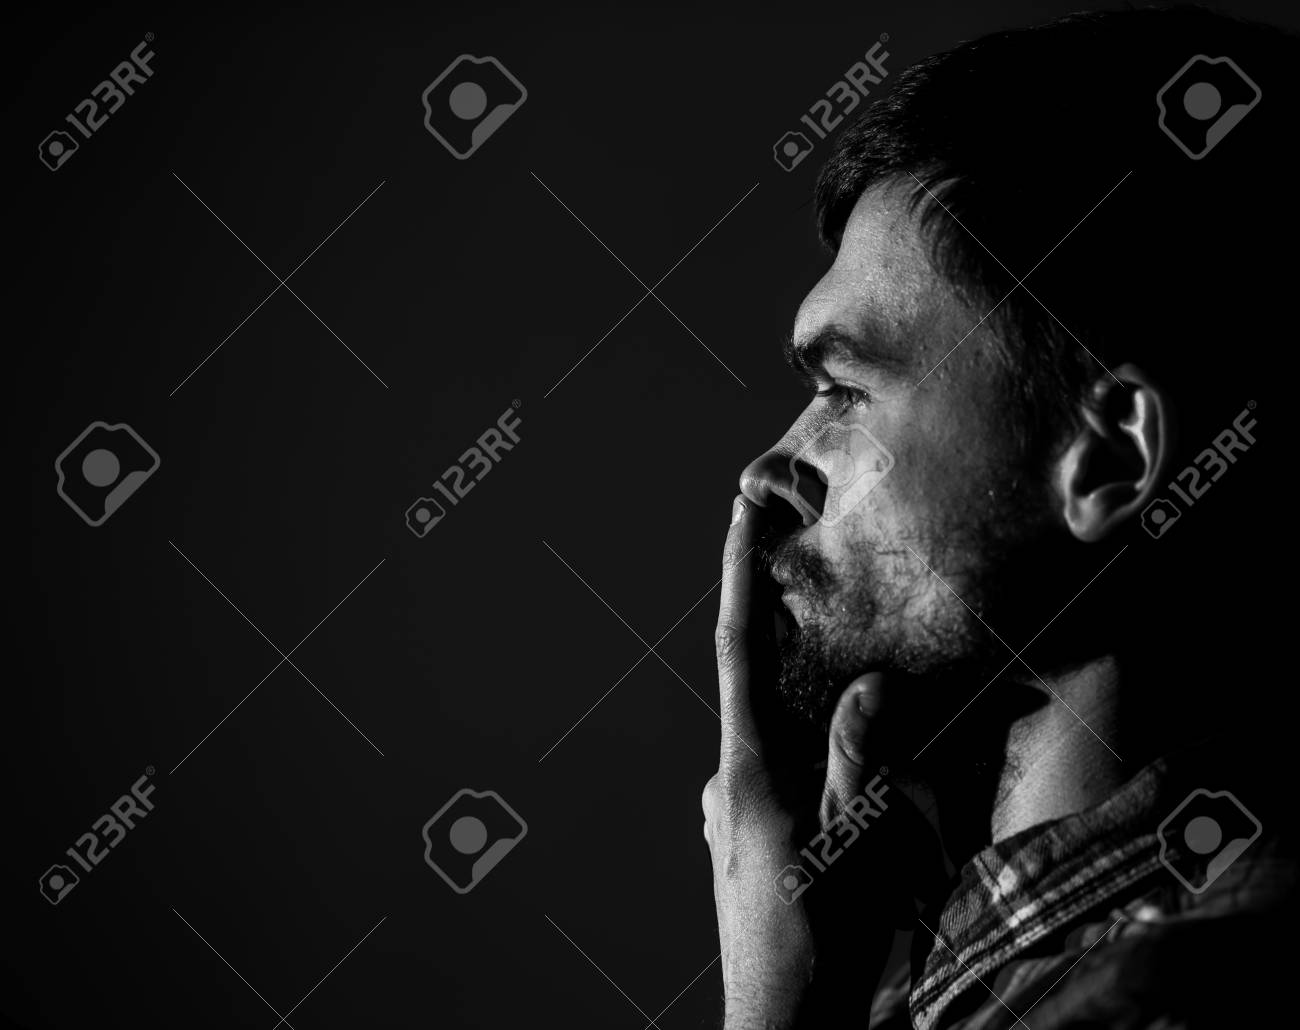 Sad young man on a dark background sad emotions black and white